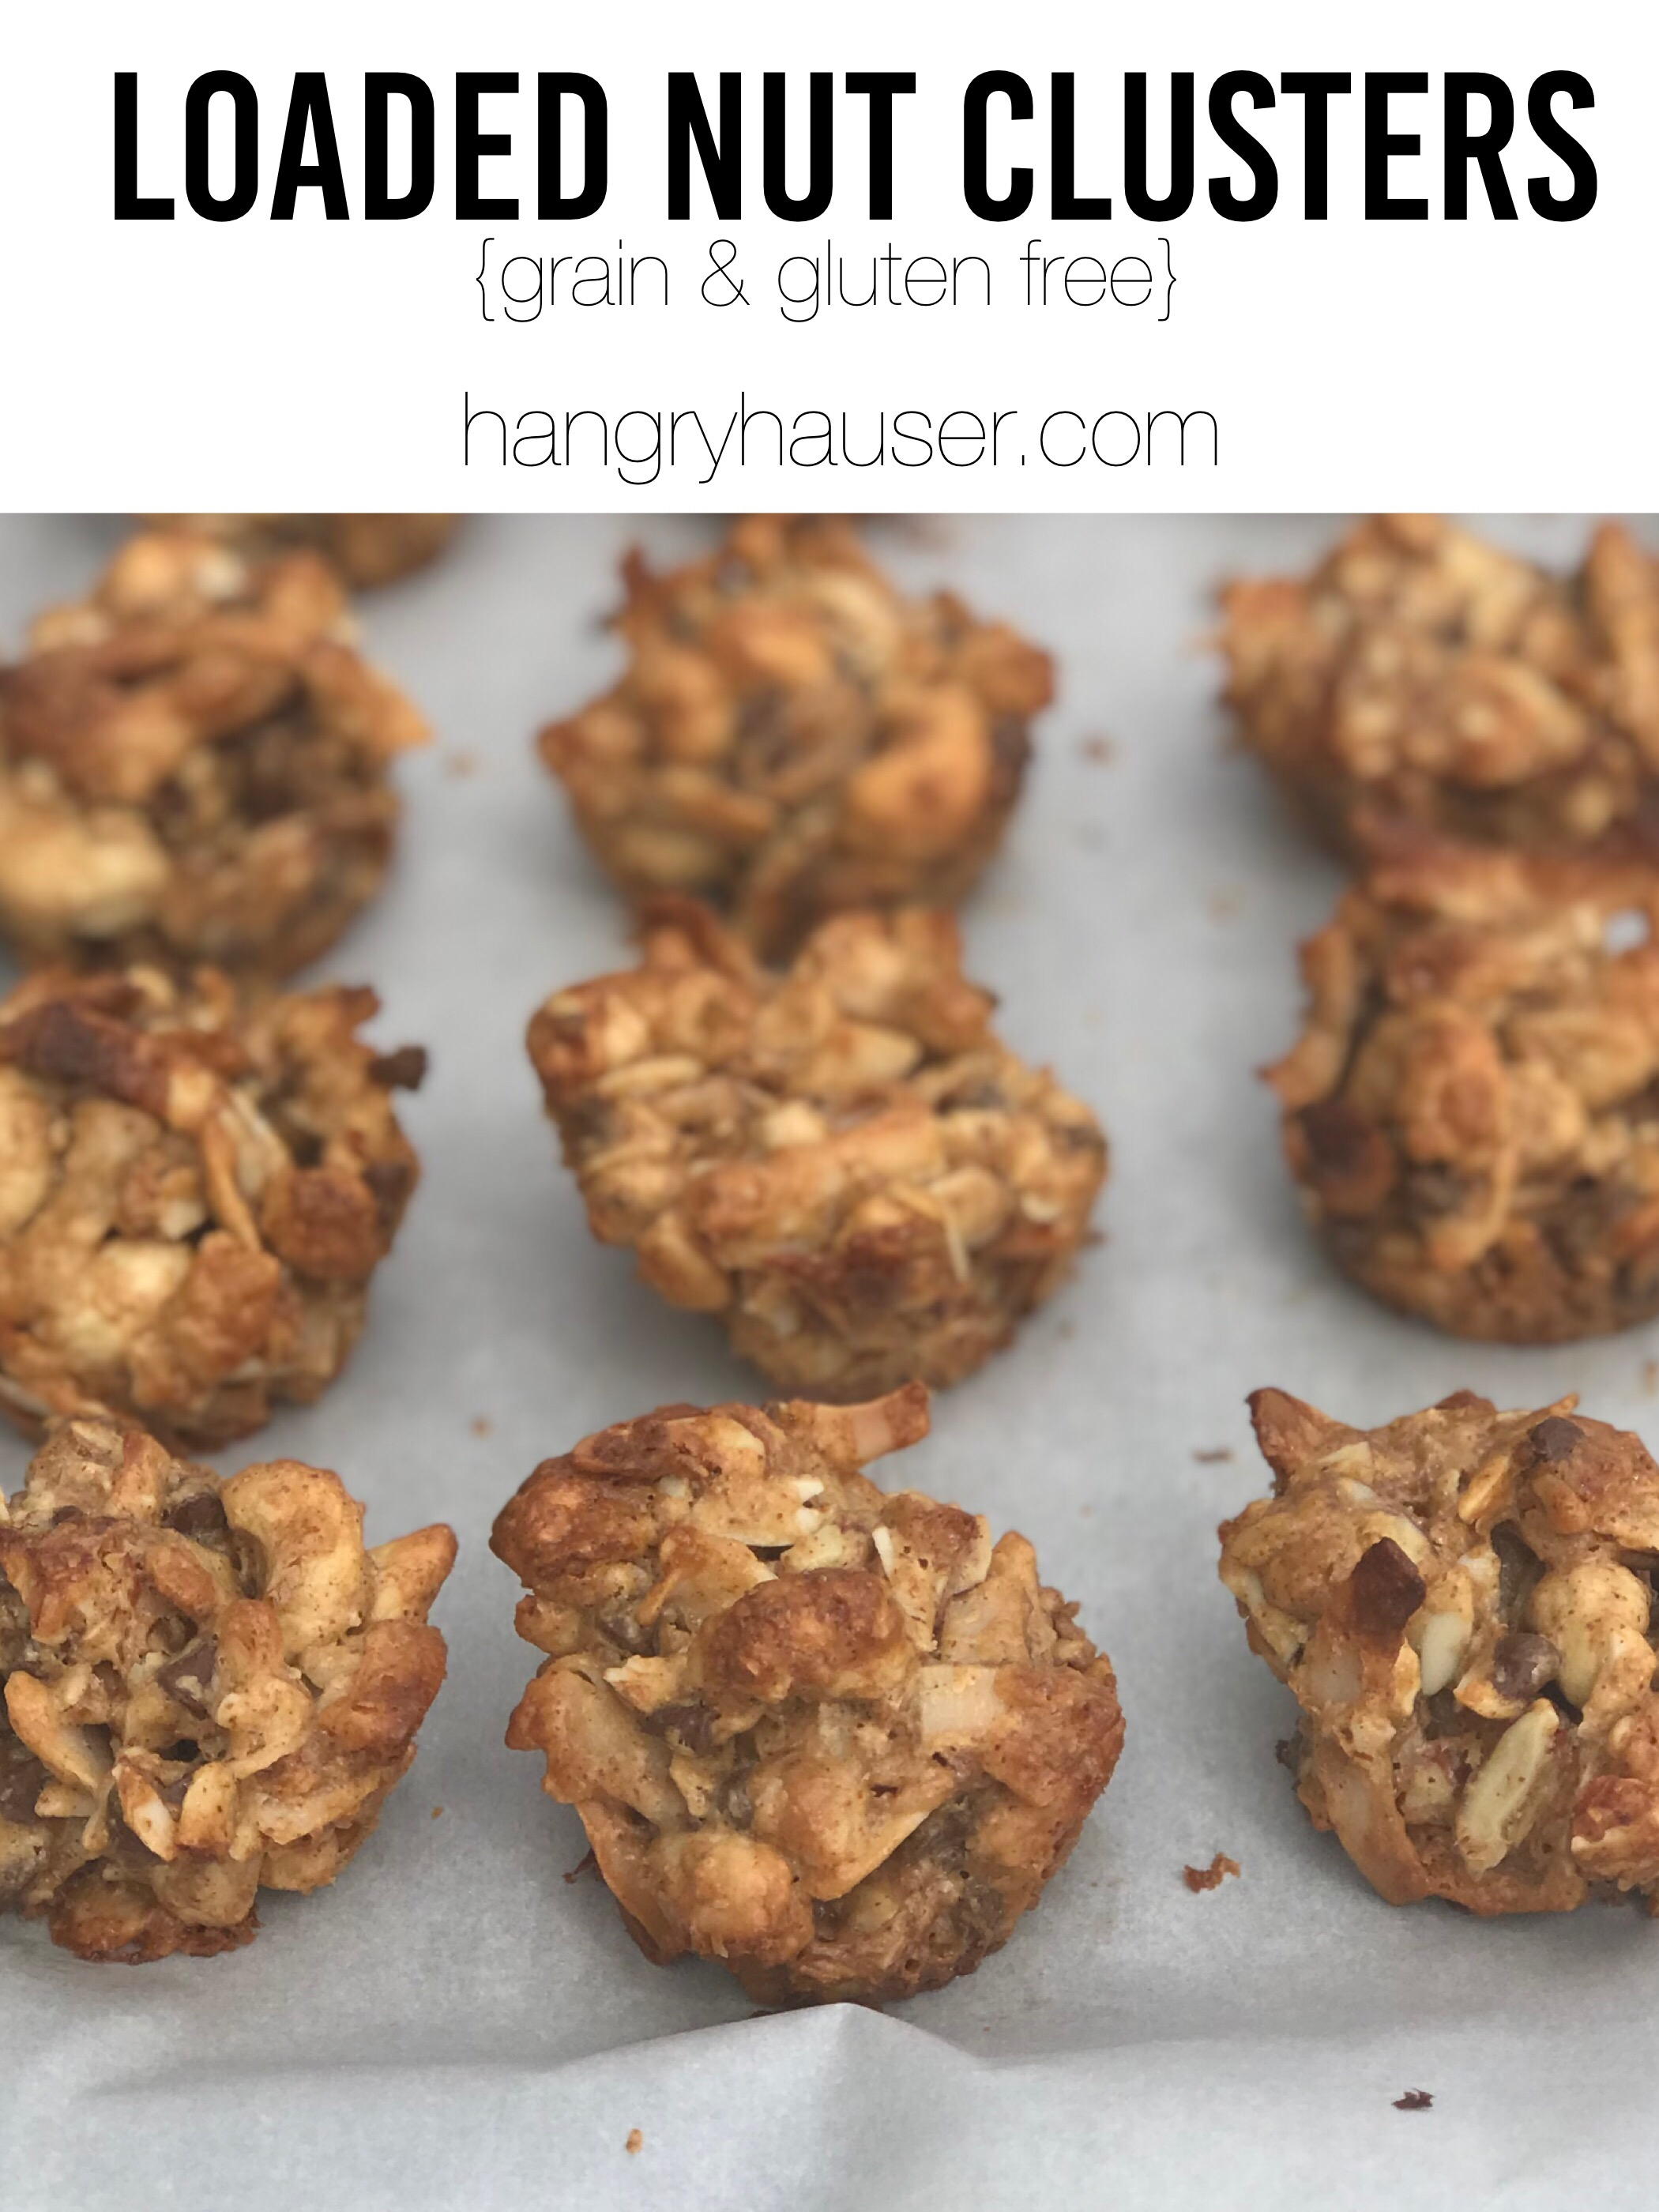 Loaded Nut Clusters